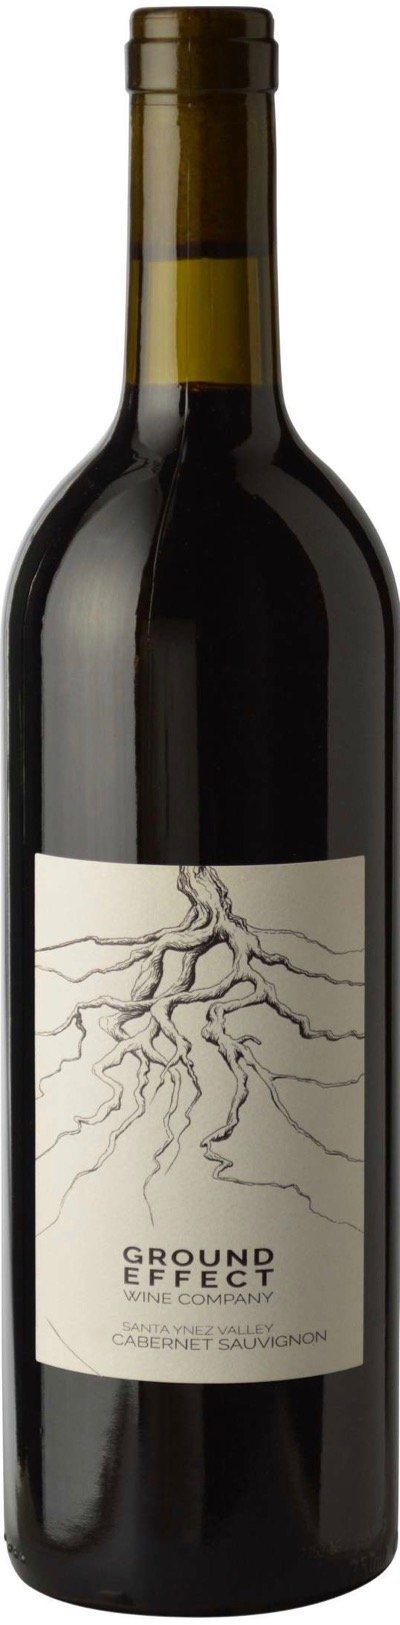 Ground Effect Cabernet Sauvignon 2017